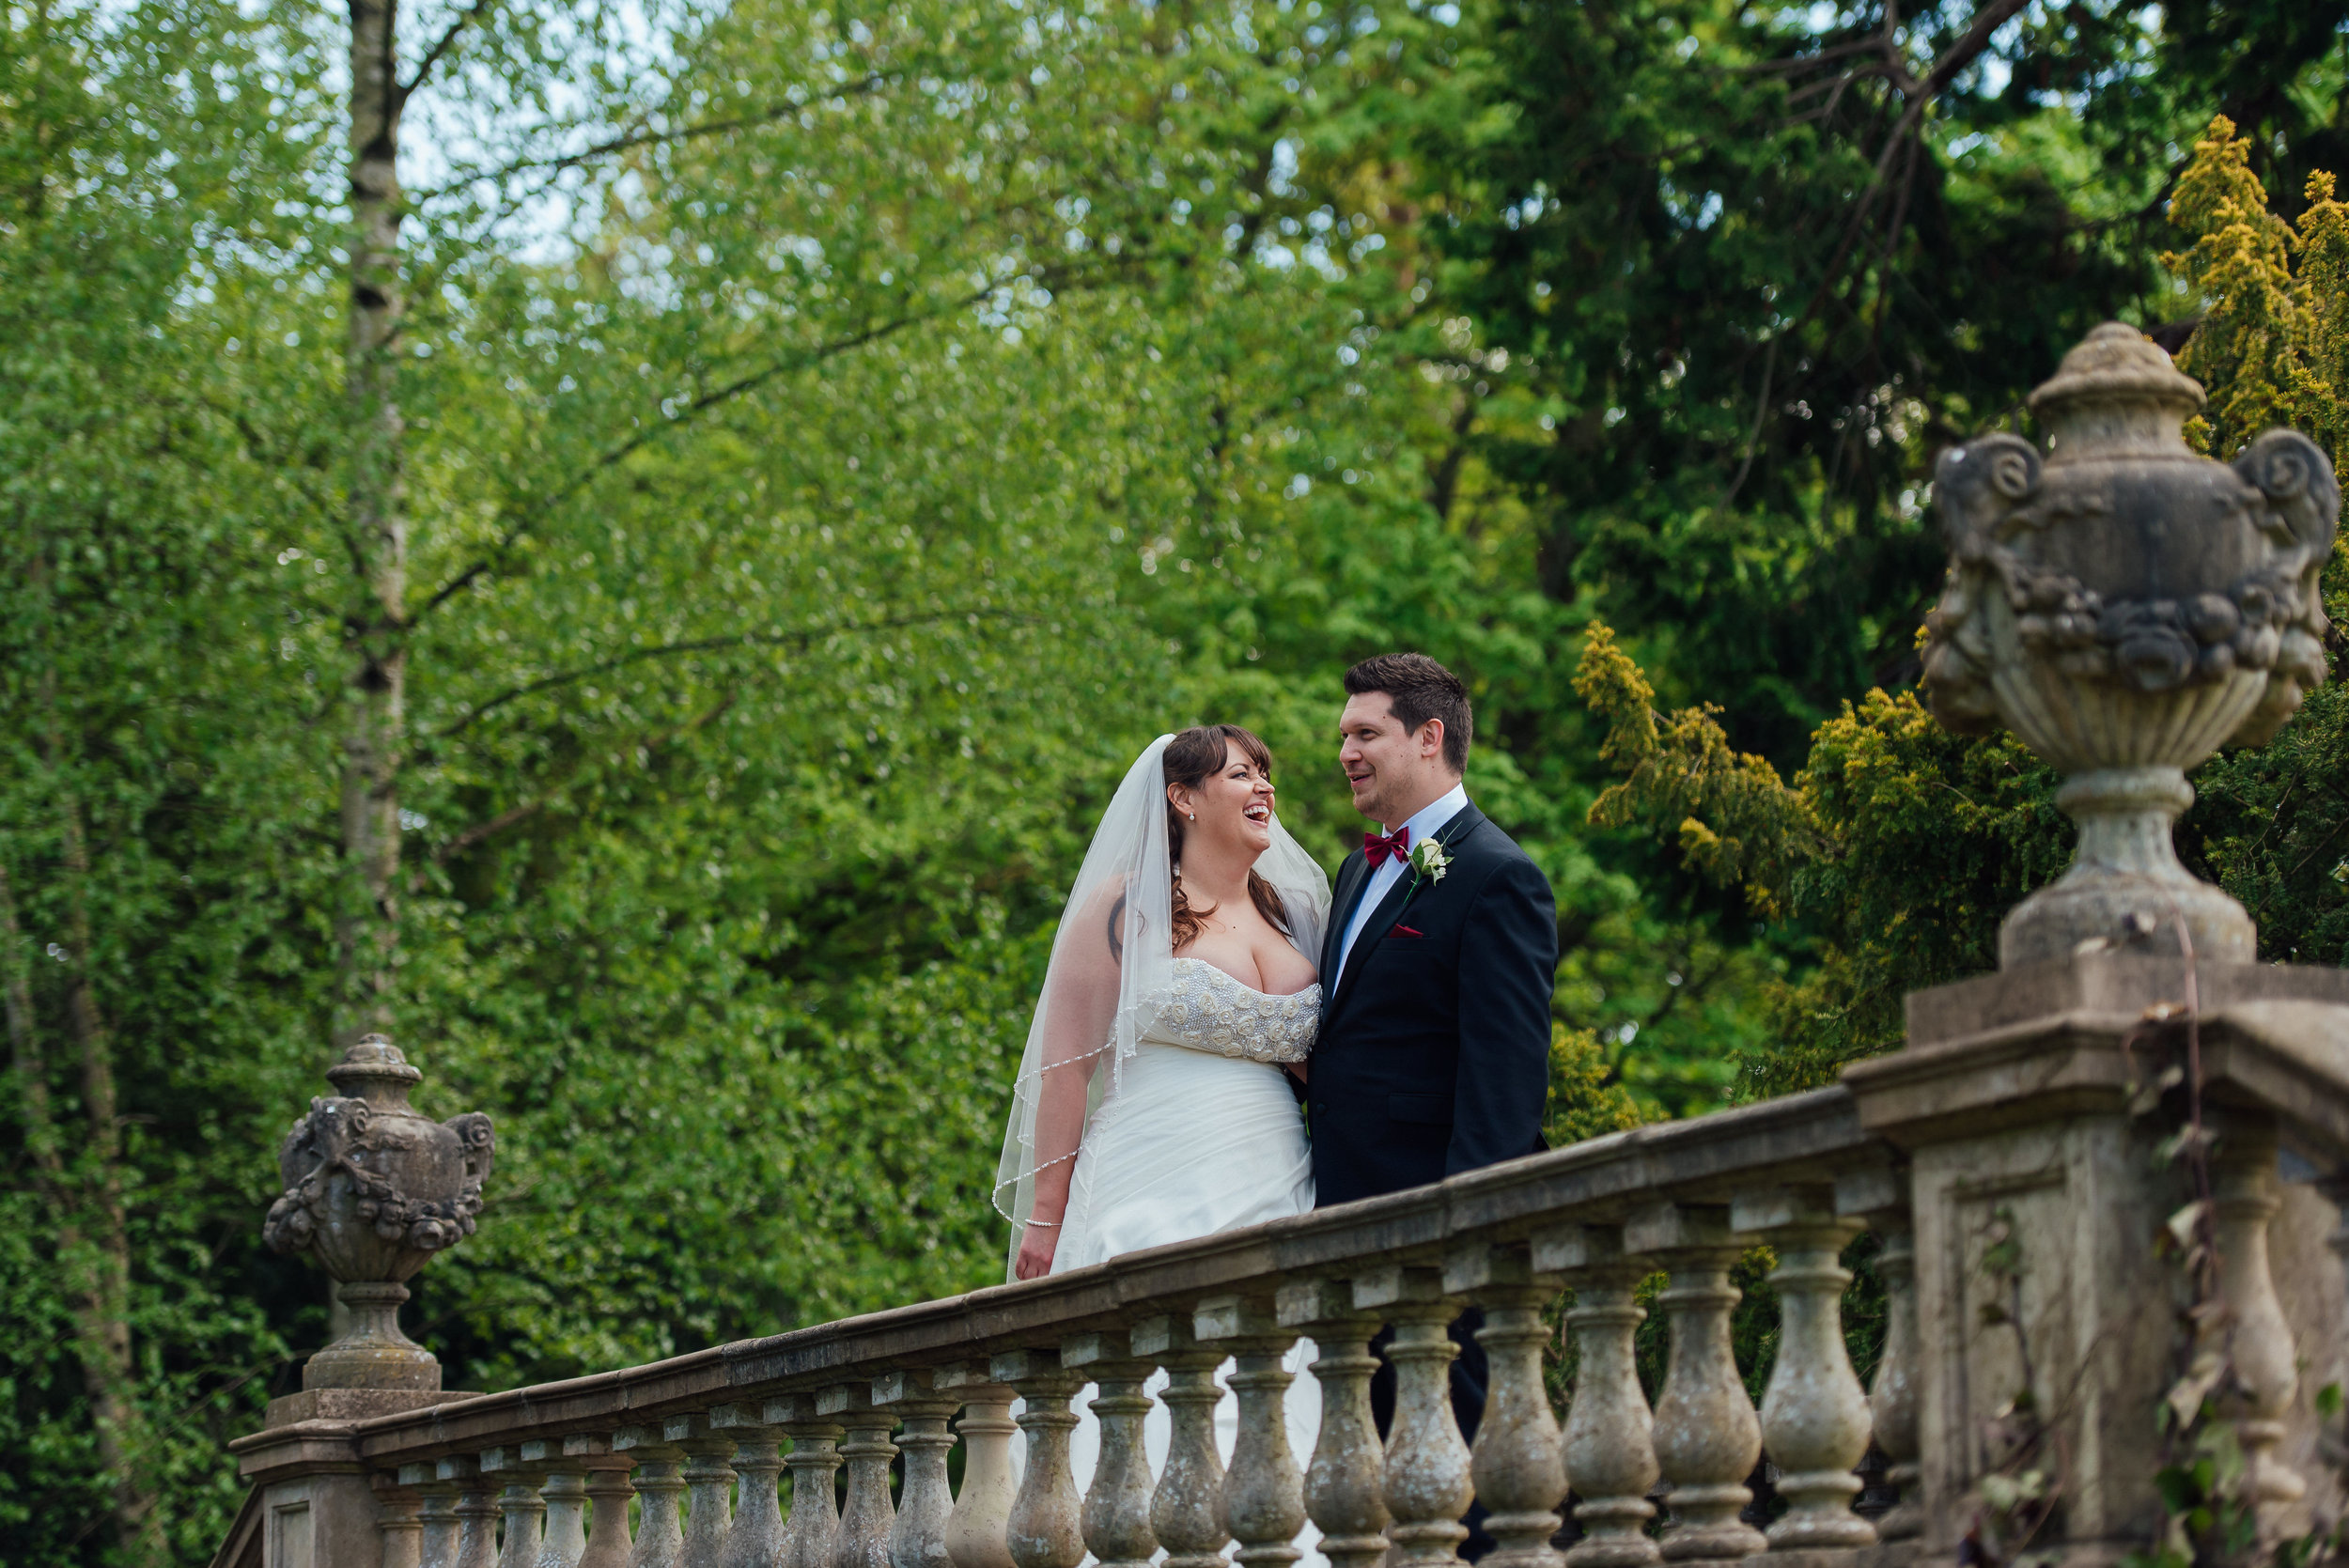 Bride and Groom at Heatherden Hall Wedding at Pinewood Studios - Amy James photography - Hampshire wedding photographer